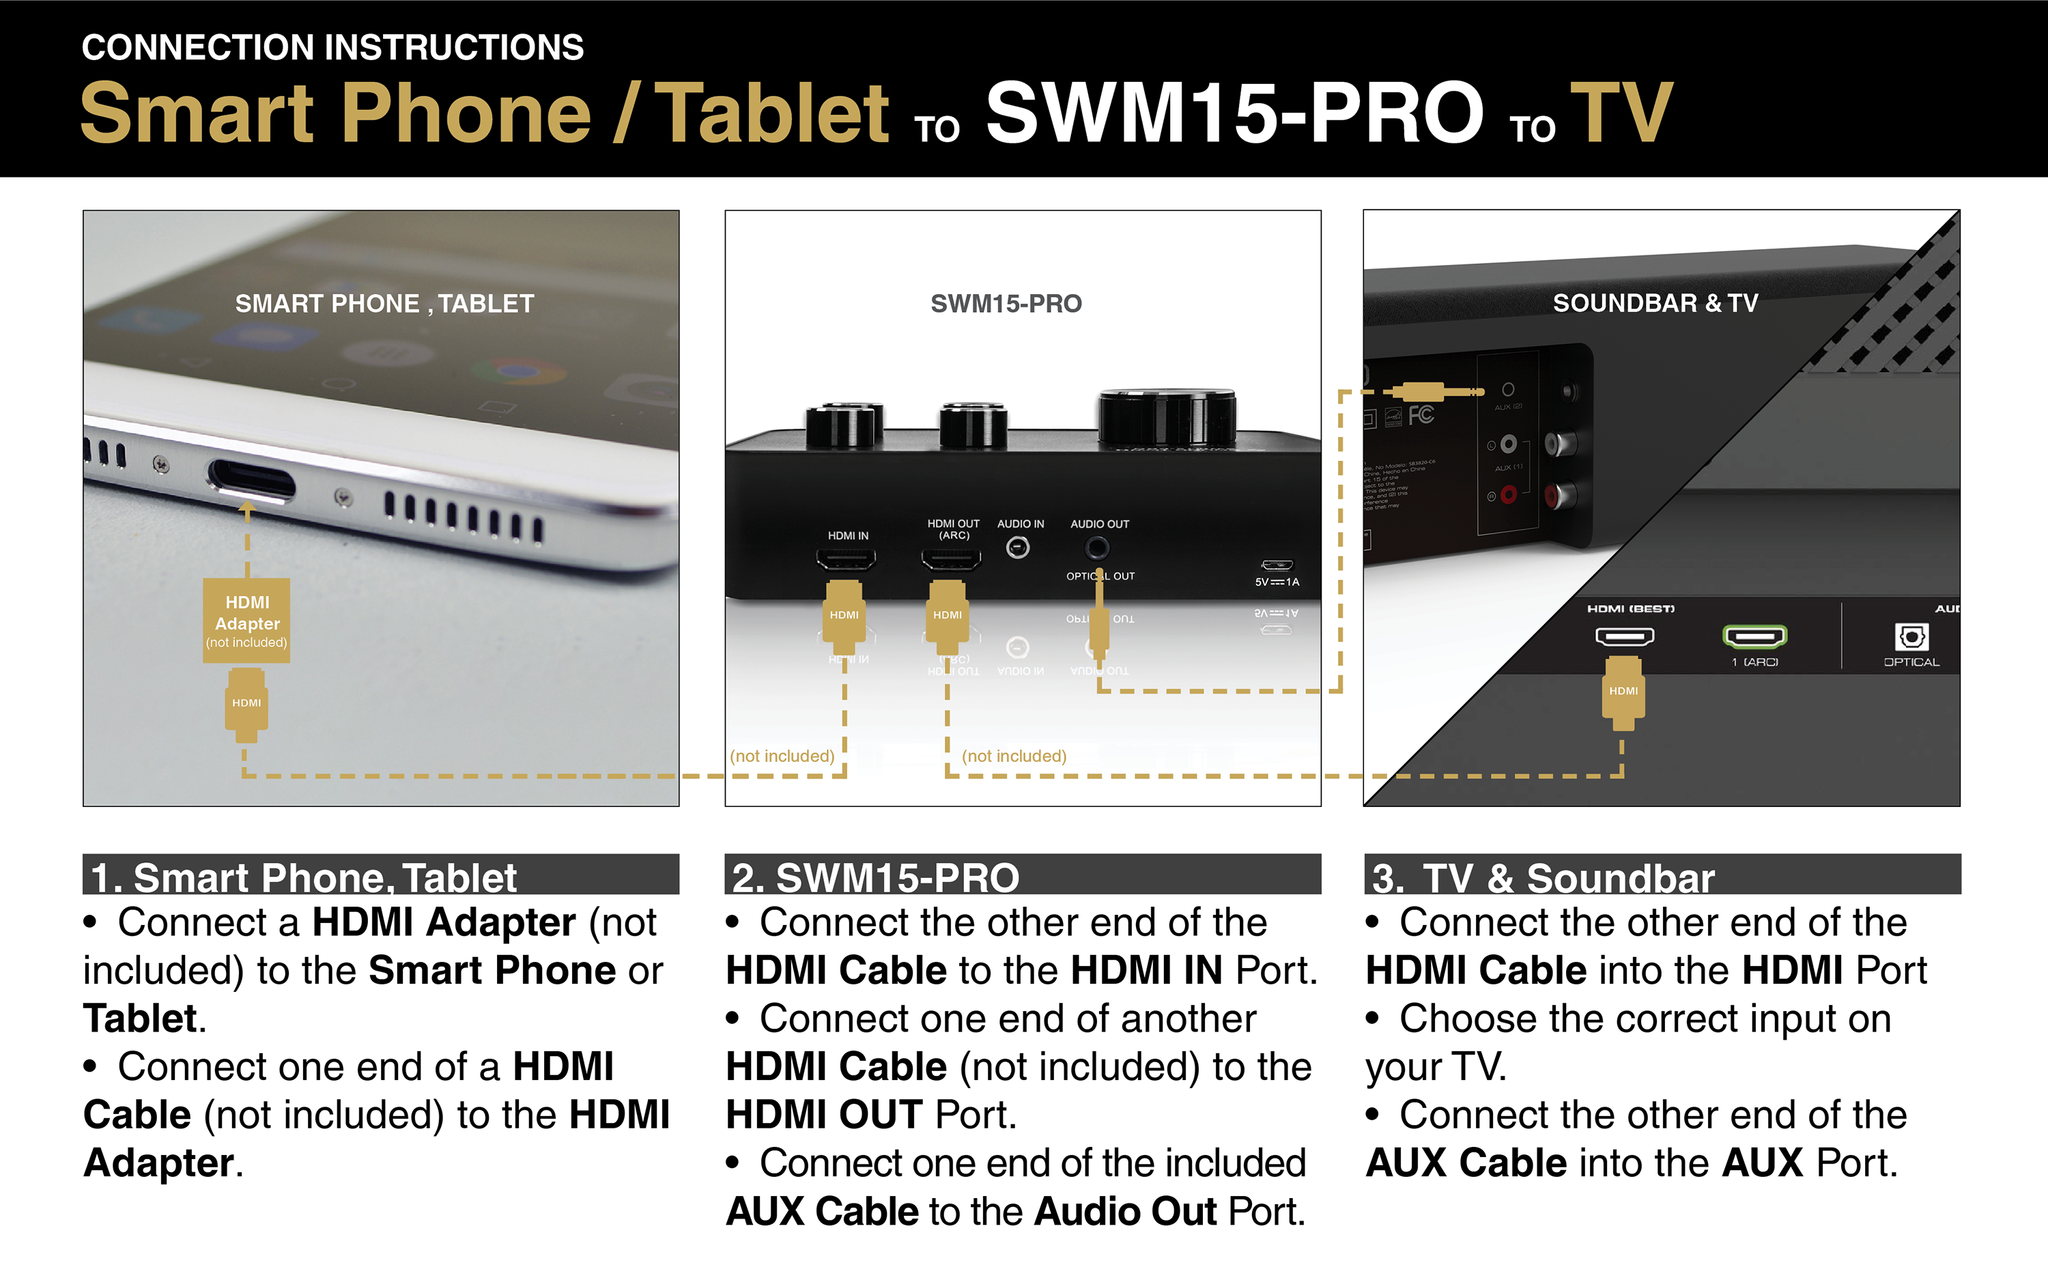 Sound Town SWM15-PRO Dual-Channel Wireless Microphone Karaoke Mixer System with HDMI ARC, Optical (Toslink), AUX, RCA, Bluetooth, 2 Handheld Microphones - Selectable Frequencies - Works with, For, Supports Smart TV, Sound Bar, Media Box, Receiver, Streaming Device, Chromecast, ROKU Box, Firestick, Home Theatre, Home Theater, Youtube App - Connection Instructions Tutorial and How to Connect a Smart Phone or Tablet to SWM15-PRO Microphone Karaoke Mixer System to TV with HDMI Adapter